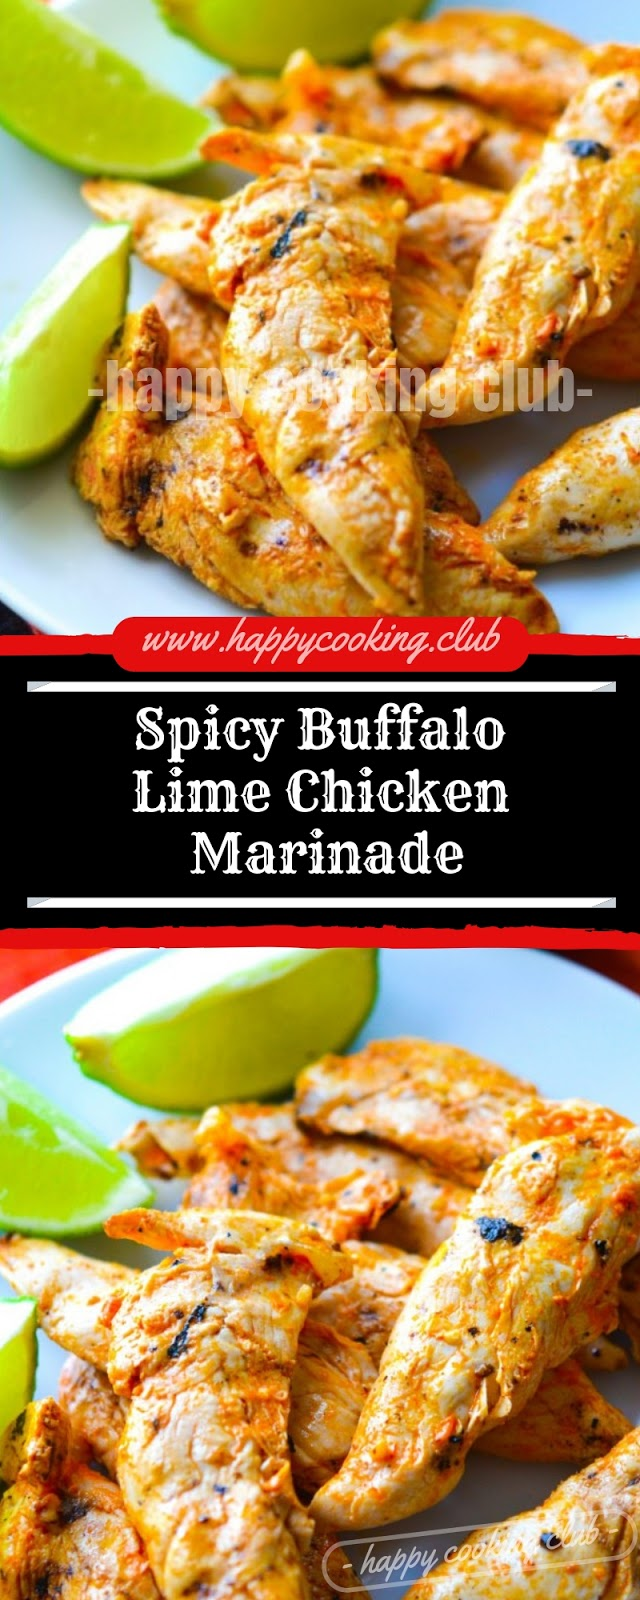 Spicy Buffalo Lime Chicken Marinade